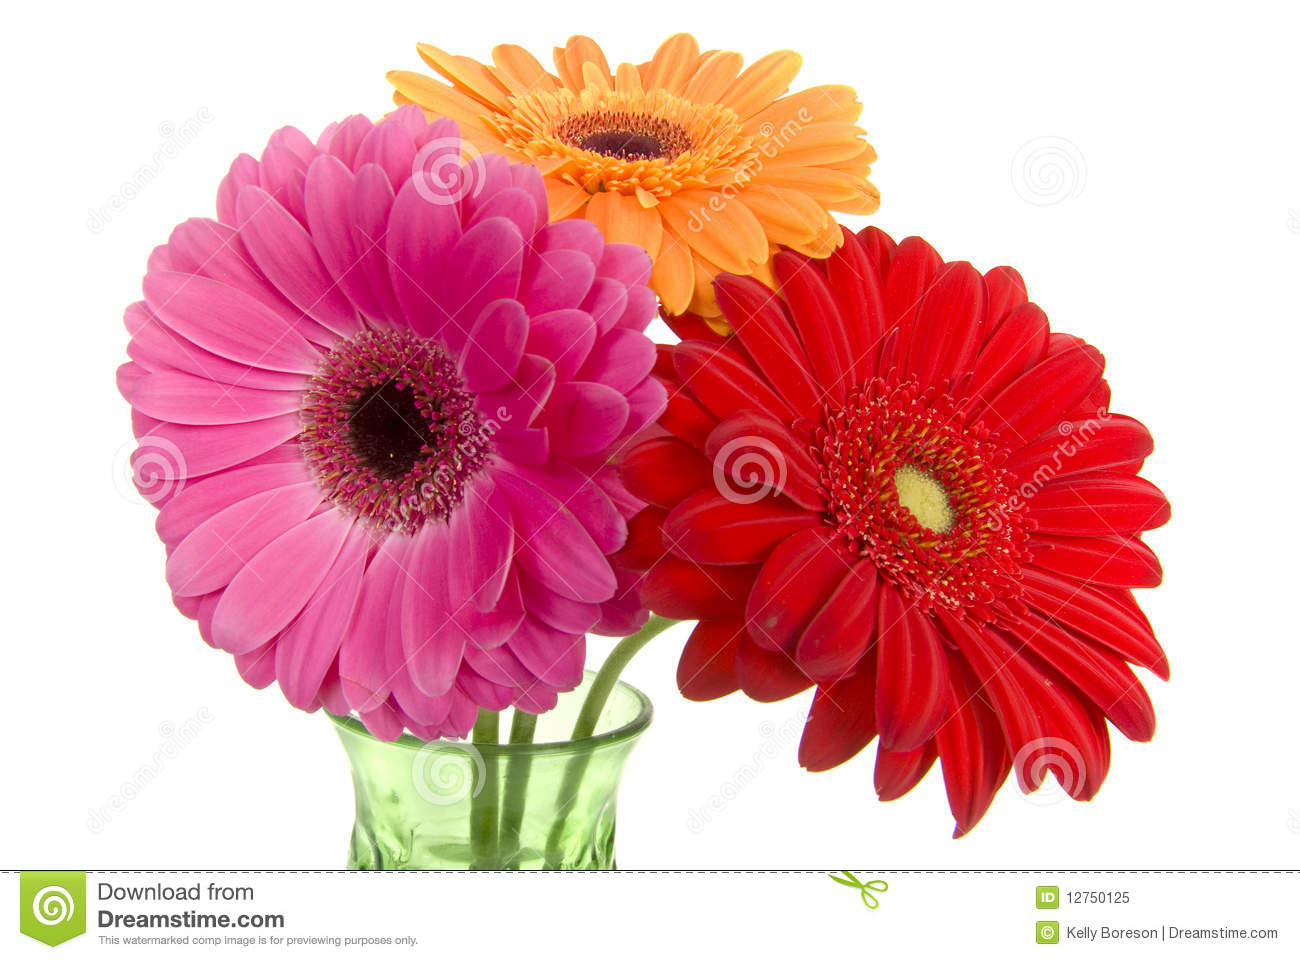 Three Colorful Gerber Daisies In Vase Stock Image - Image ...